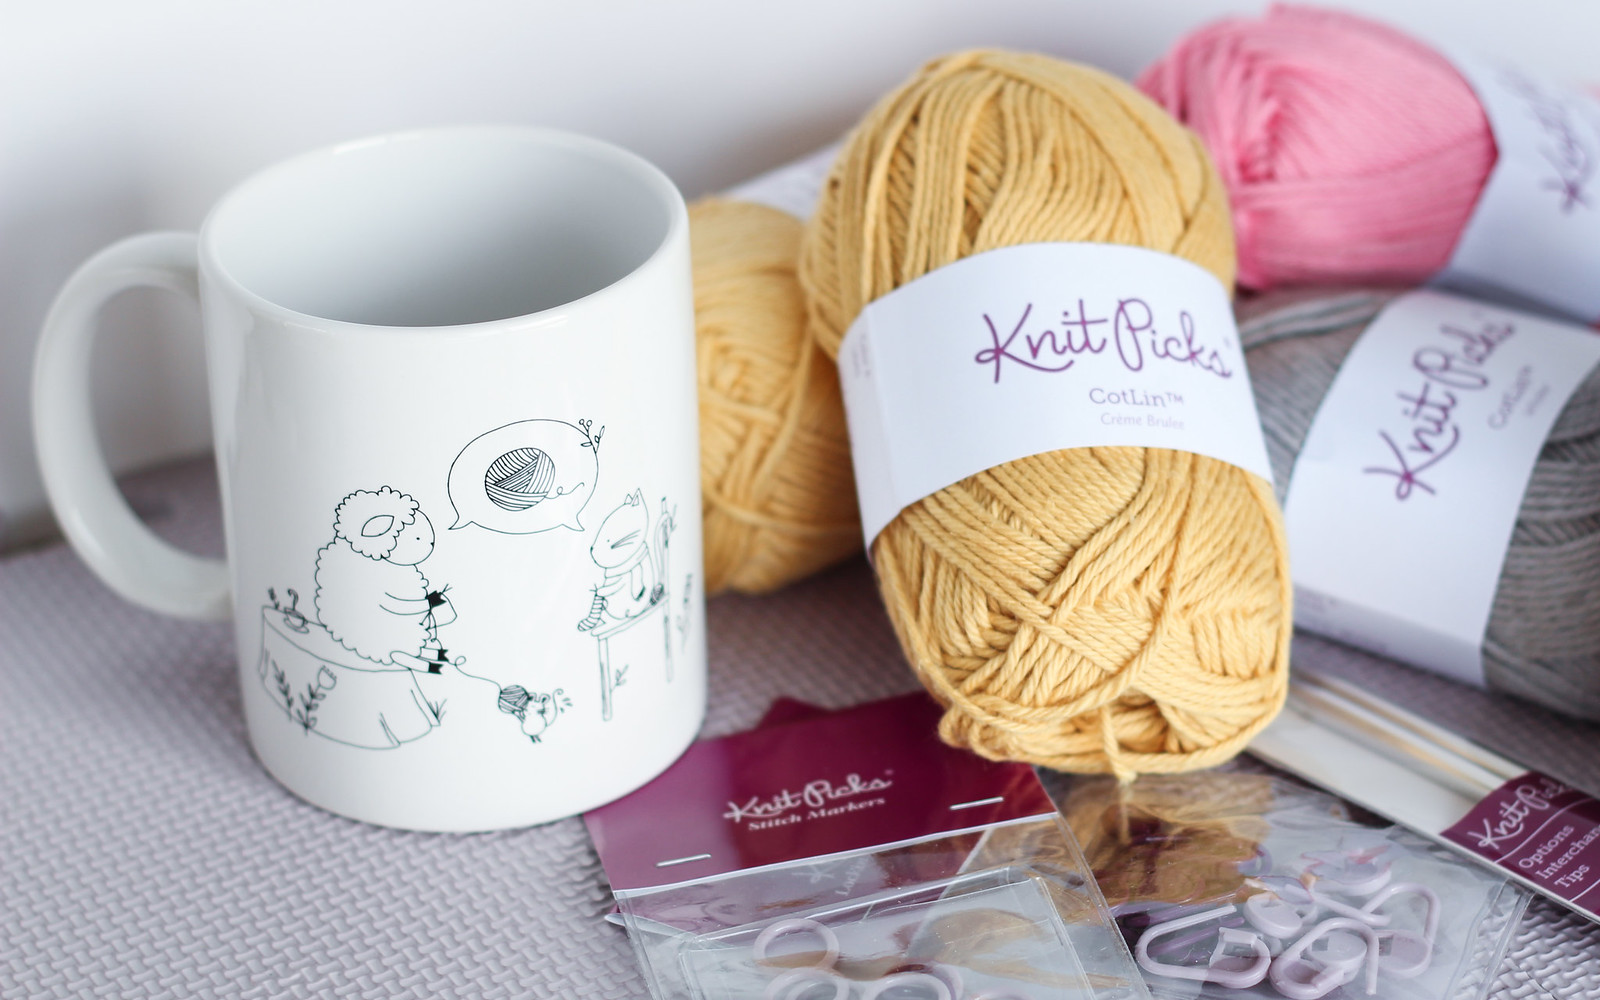 Yarn love mug Sheep and Kitten from Knitpicks